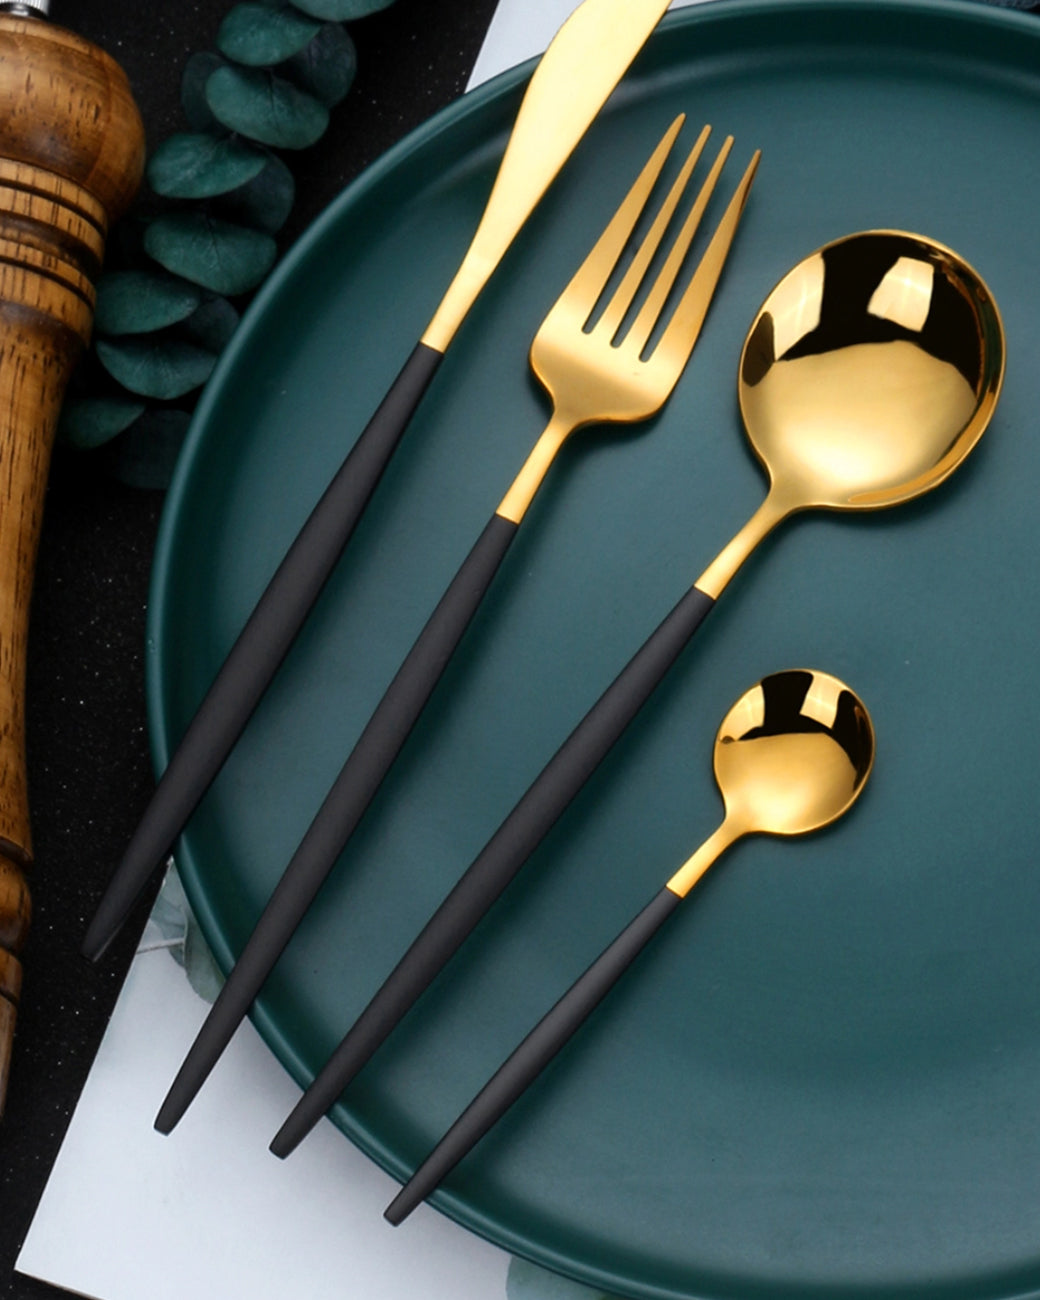 Duo-tone Utensil Set